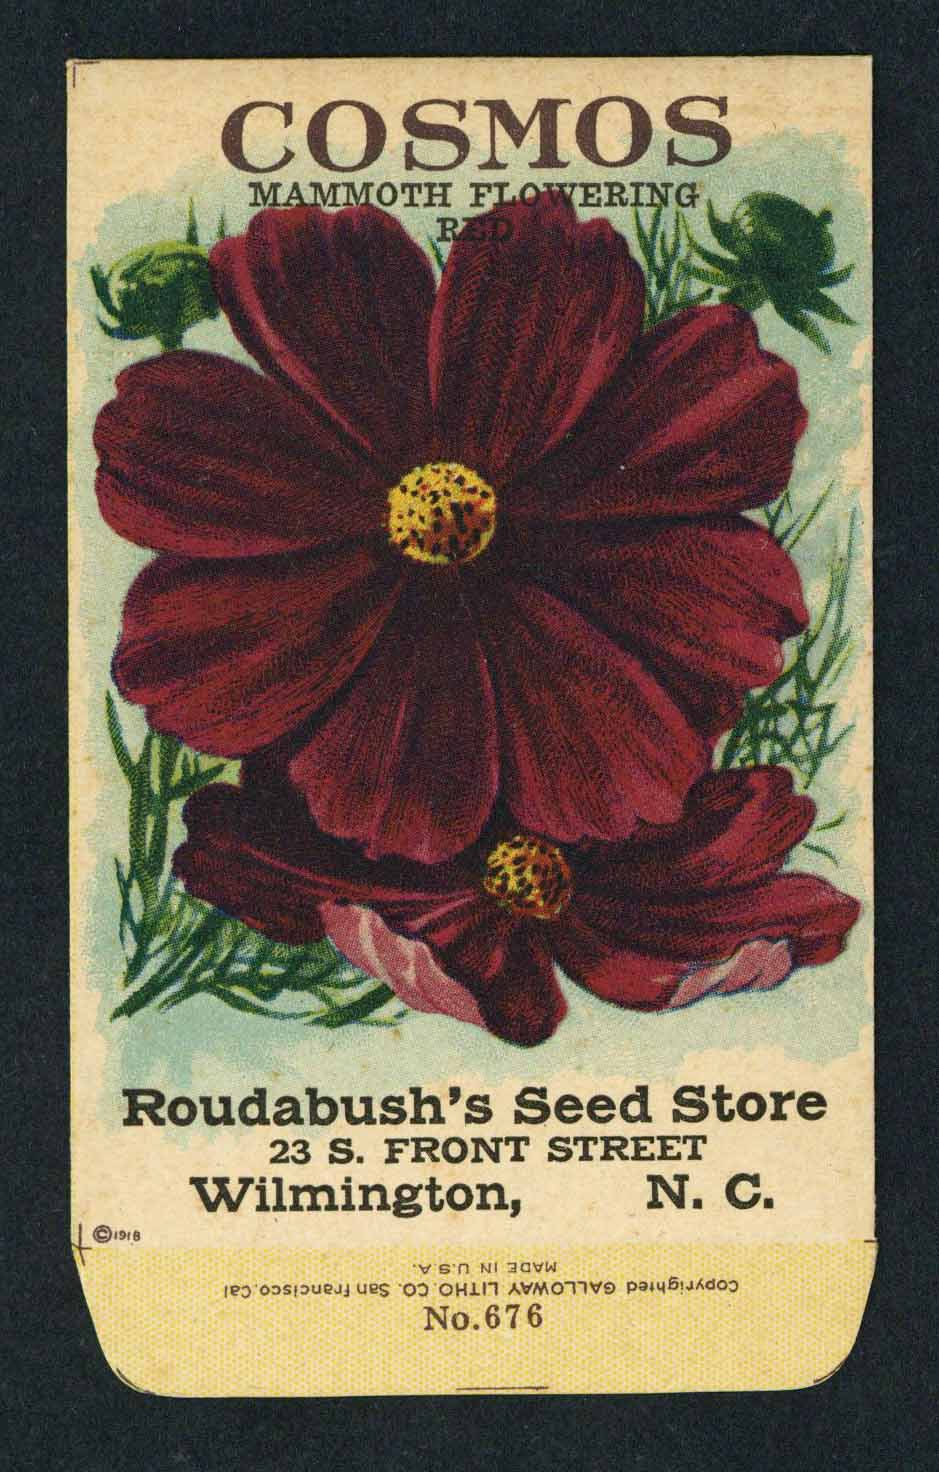 Cosmos Antique Roudabush's Seed Store Seed Packet, Red